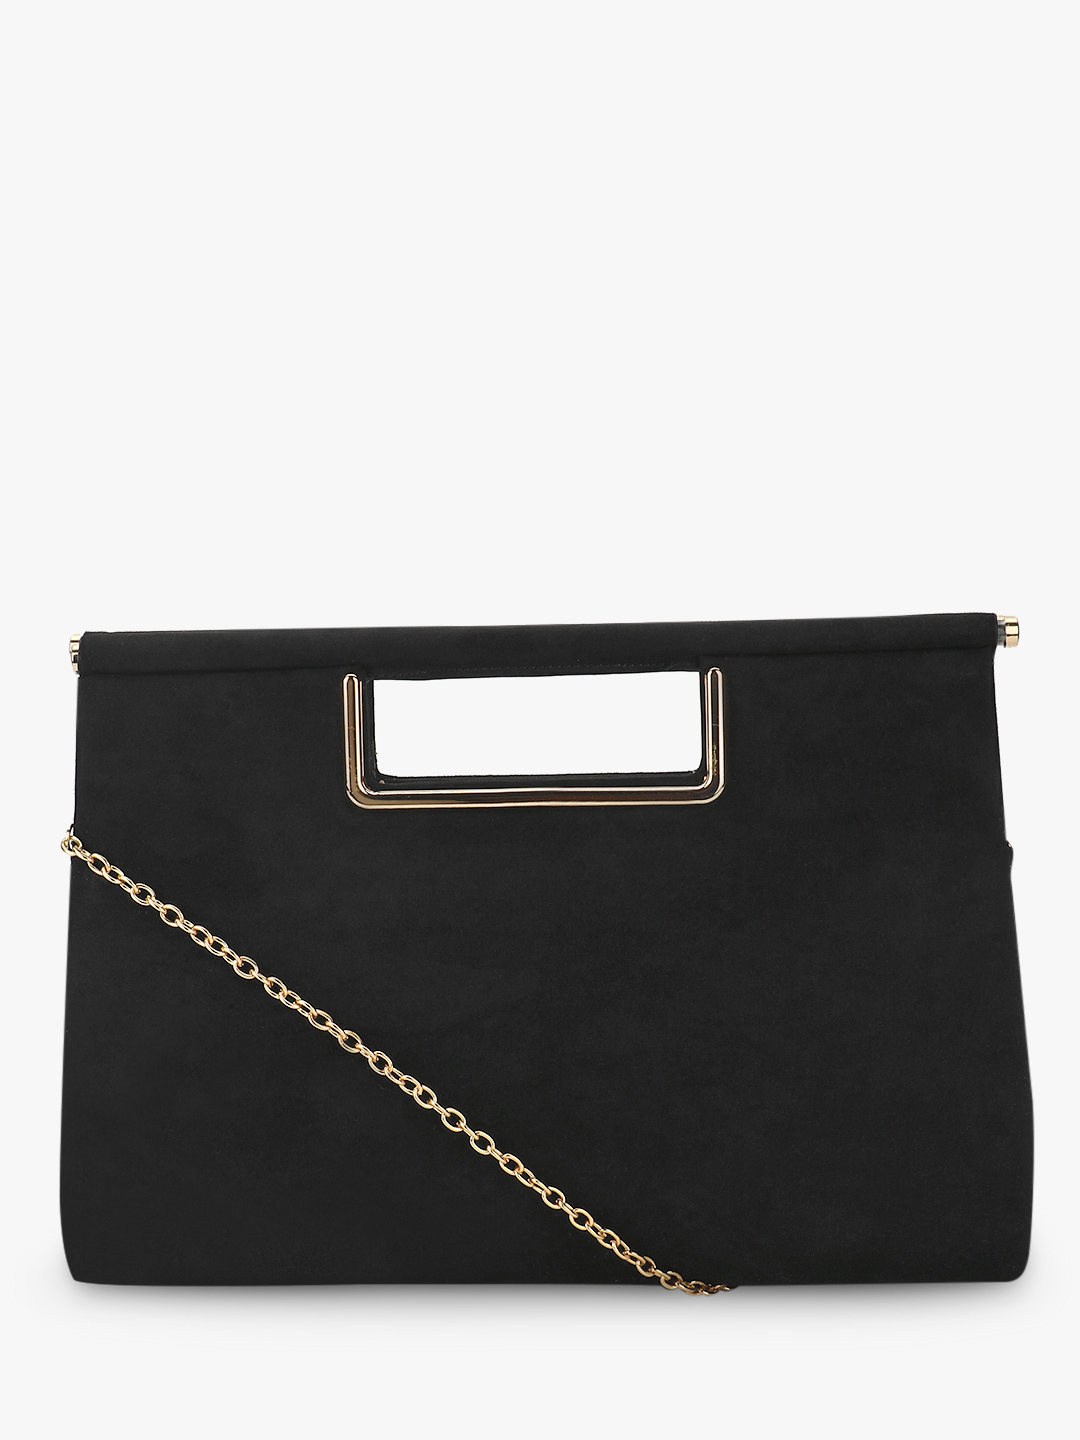 New Look Black Metal Handle Suede Clutch 1